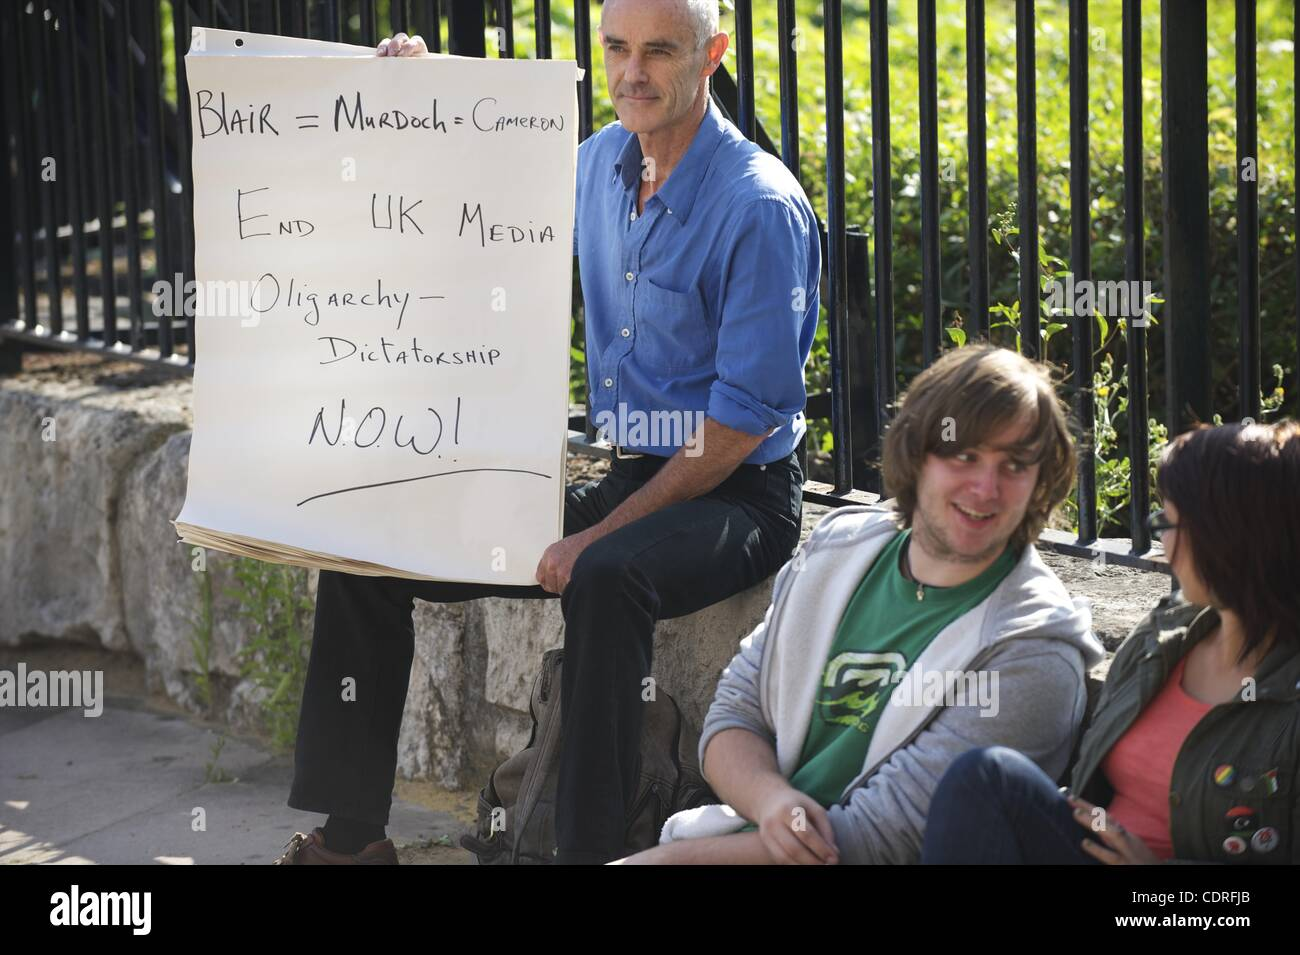 July 10, 2011 - London, England, UK - Protestors write obscenities on the final issue of the News of the World, Stock Photo